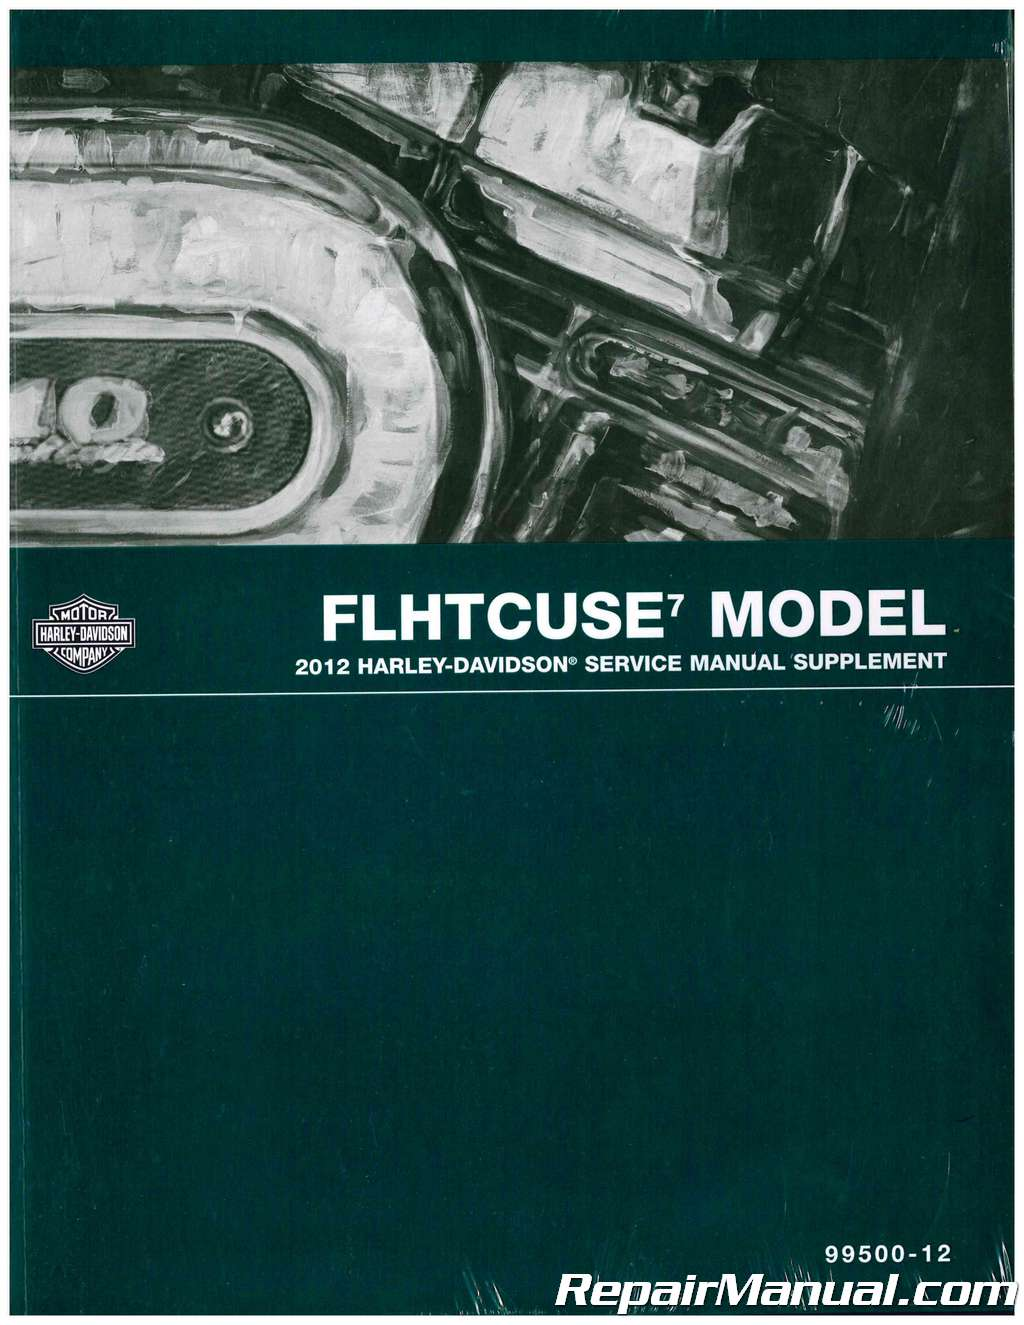 2012 Harley-Davidson FLHTCUSE7 CVO Ultra Classic Electra Glide Motorcycle  Service Manual Supplement